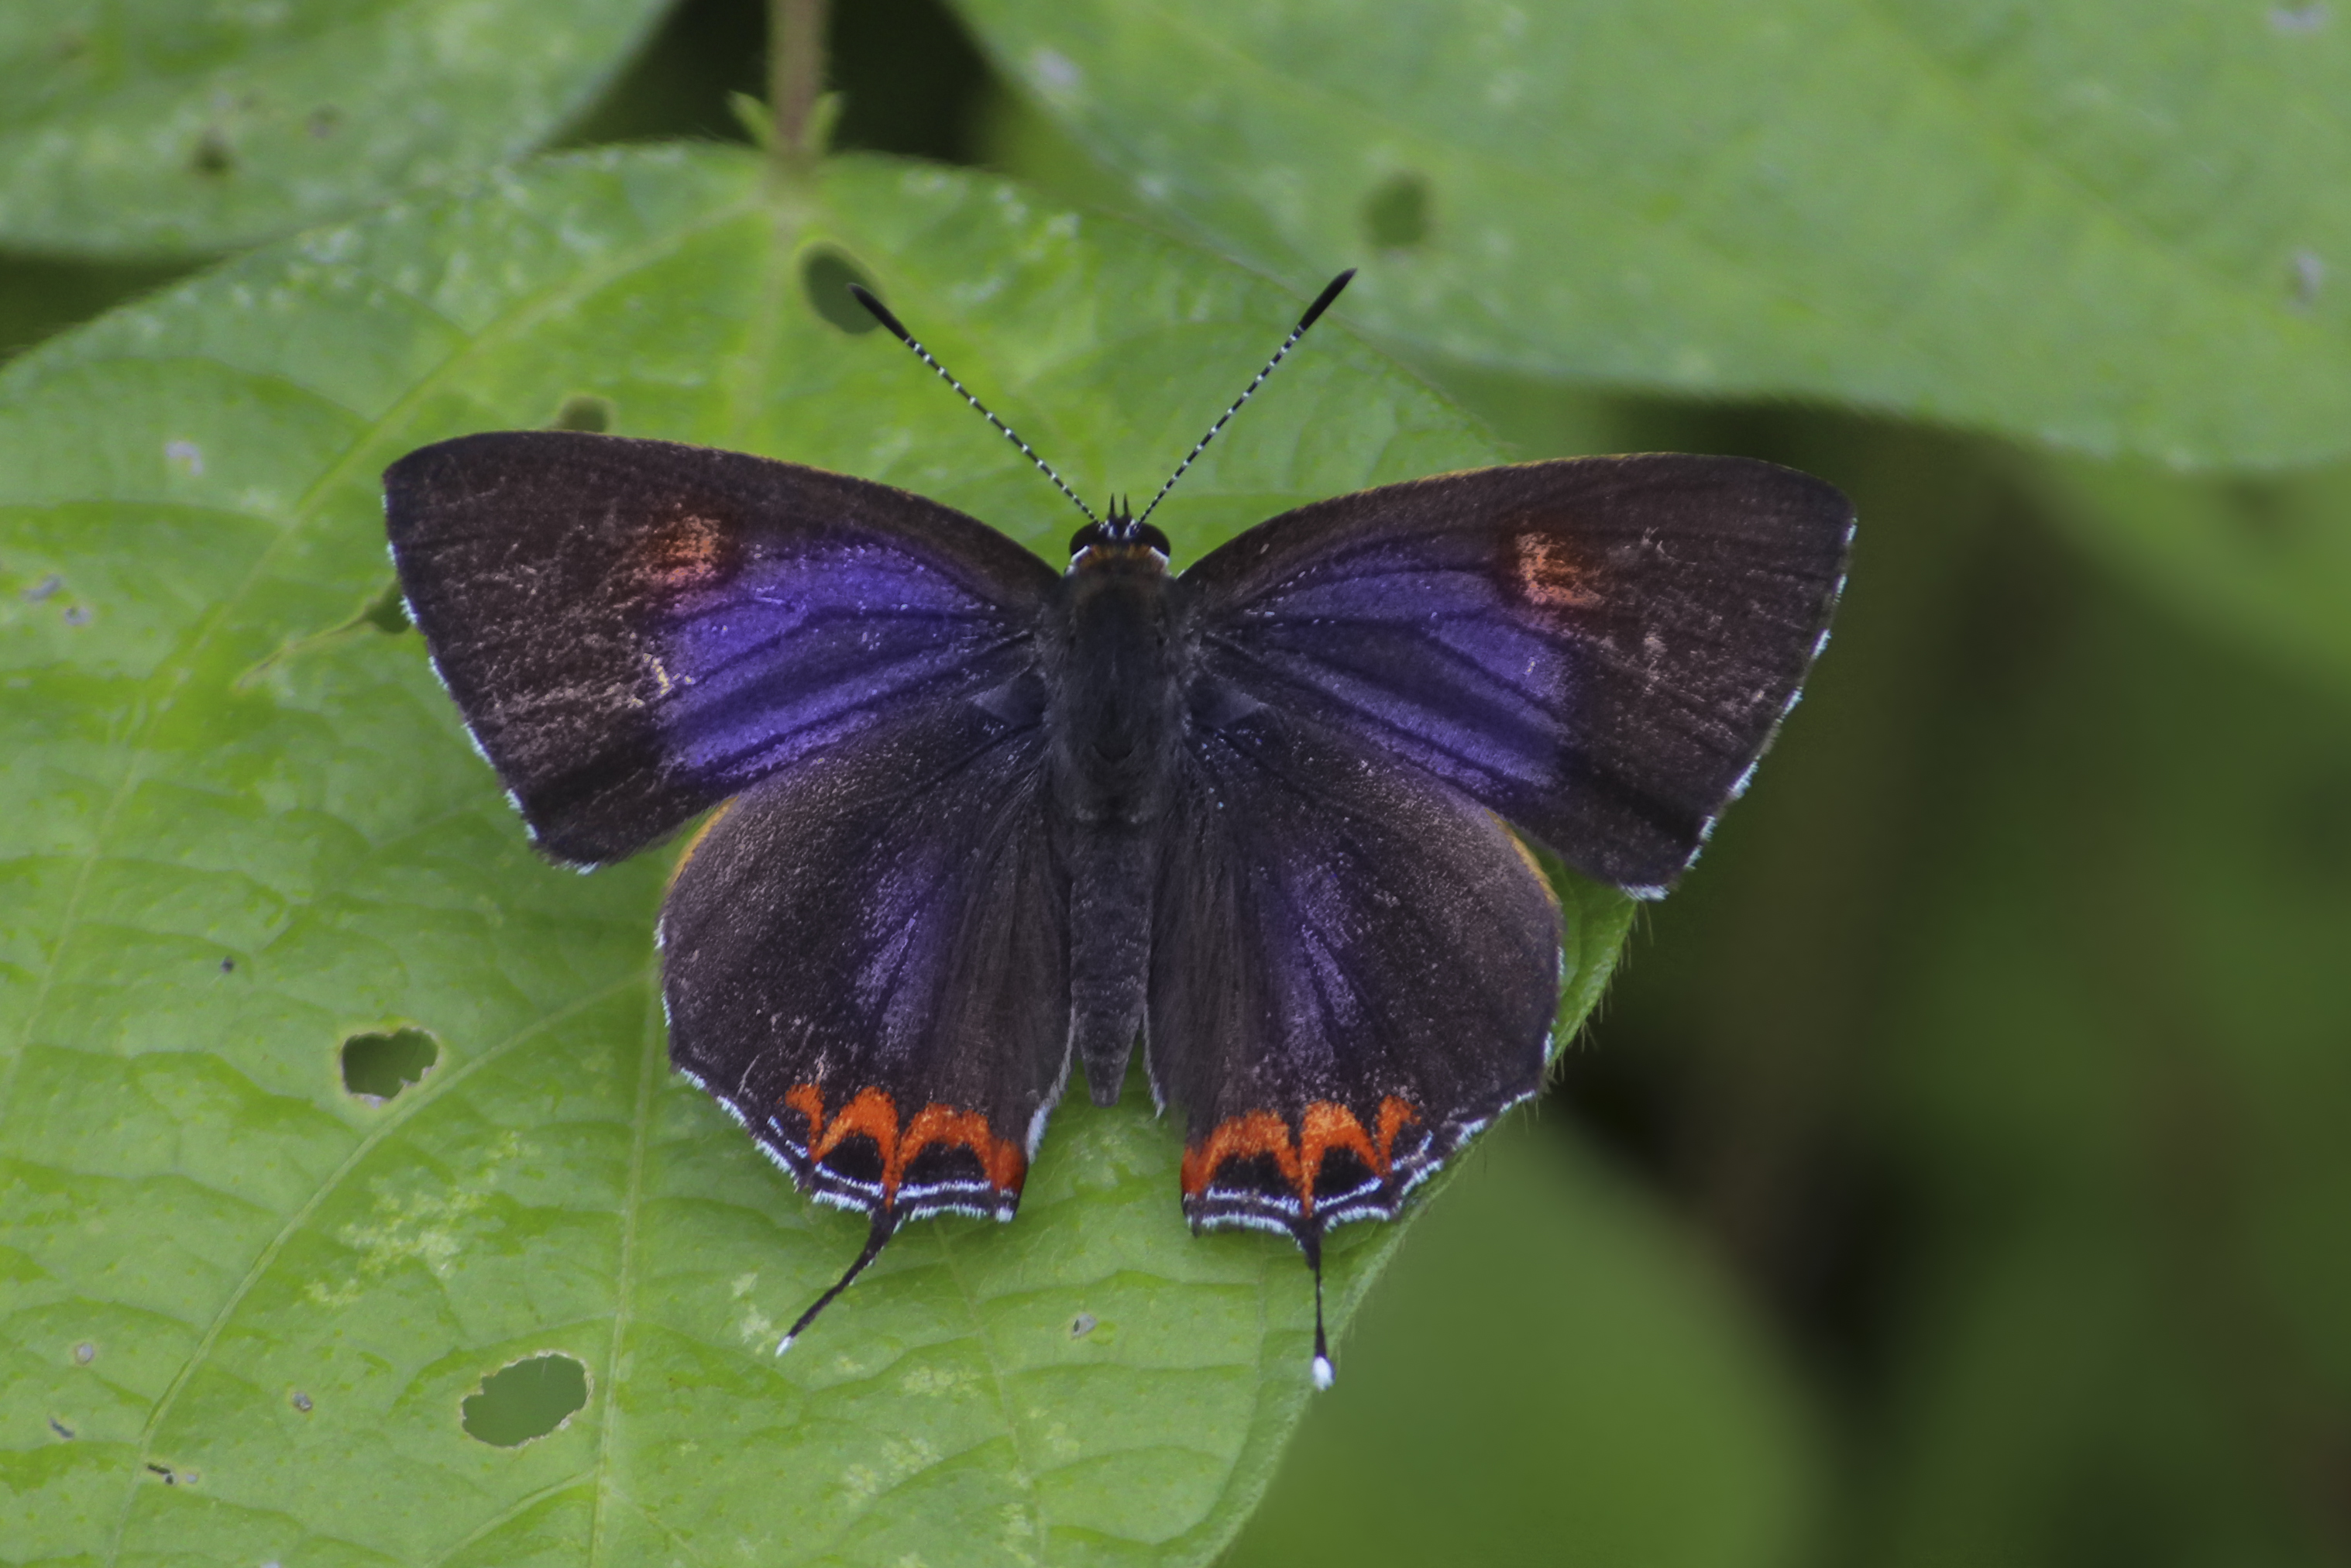 lycaeninae sahana sorrel butterfly br heliophorus sapphire m butterflies blues kollar photogallery home lycaenidae index sena subfamily the